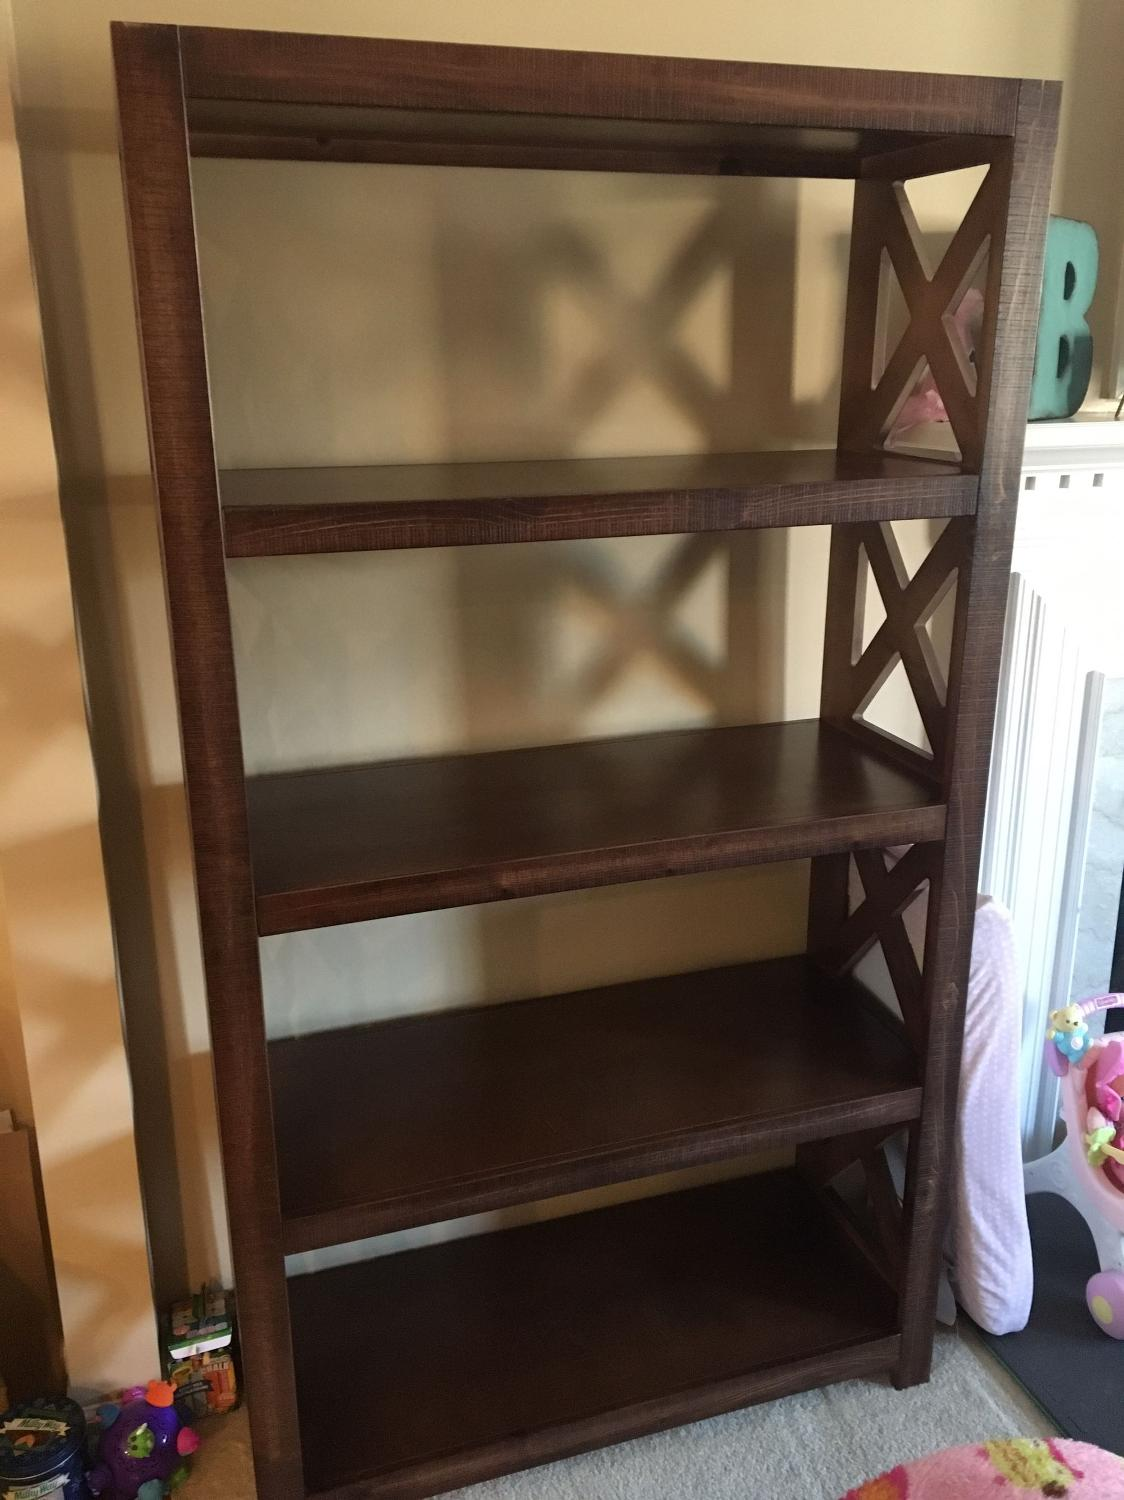 Marvelous photograph of Best Brand New!! Wood Shelving for sale in Hendersonville Tennessee  with #927339 color and 1124x1500 pixels